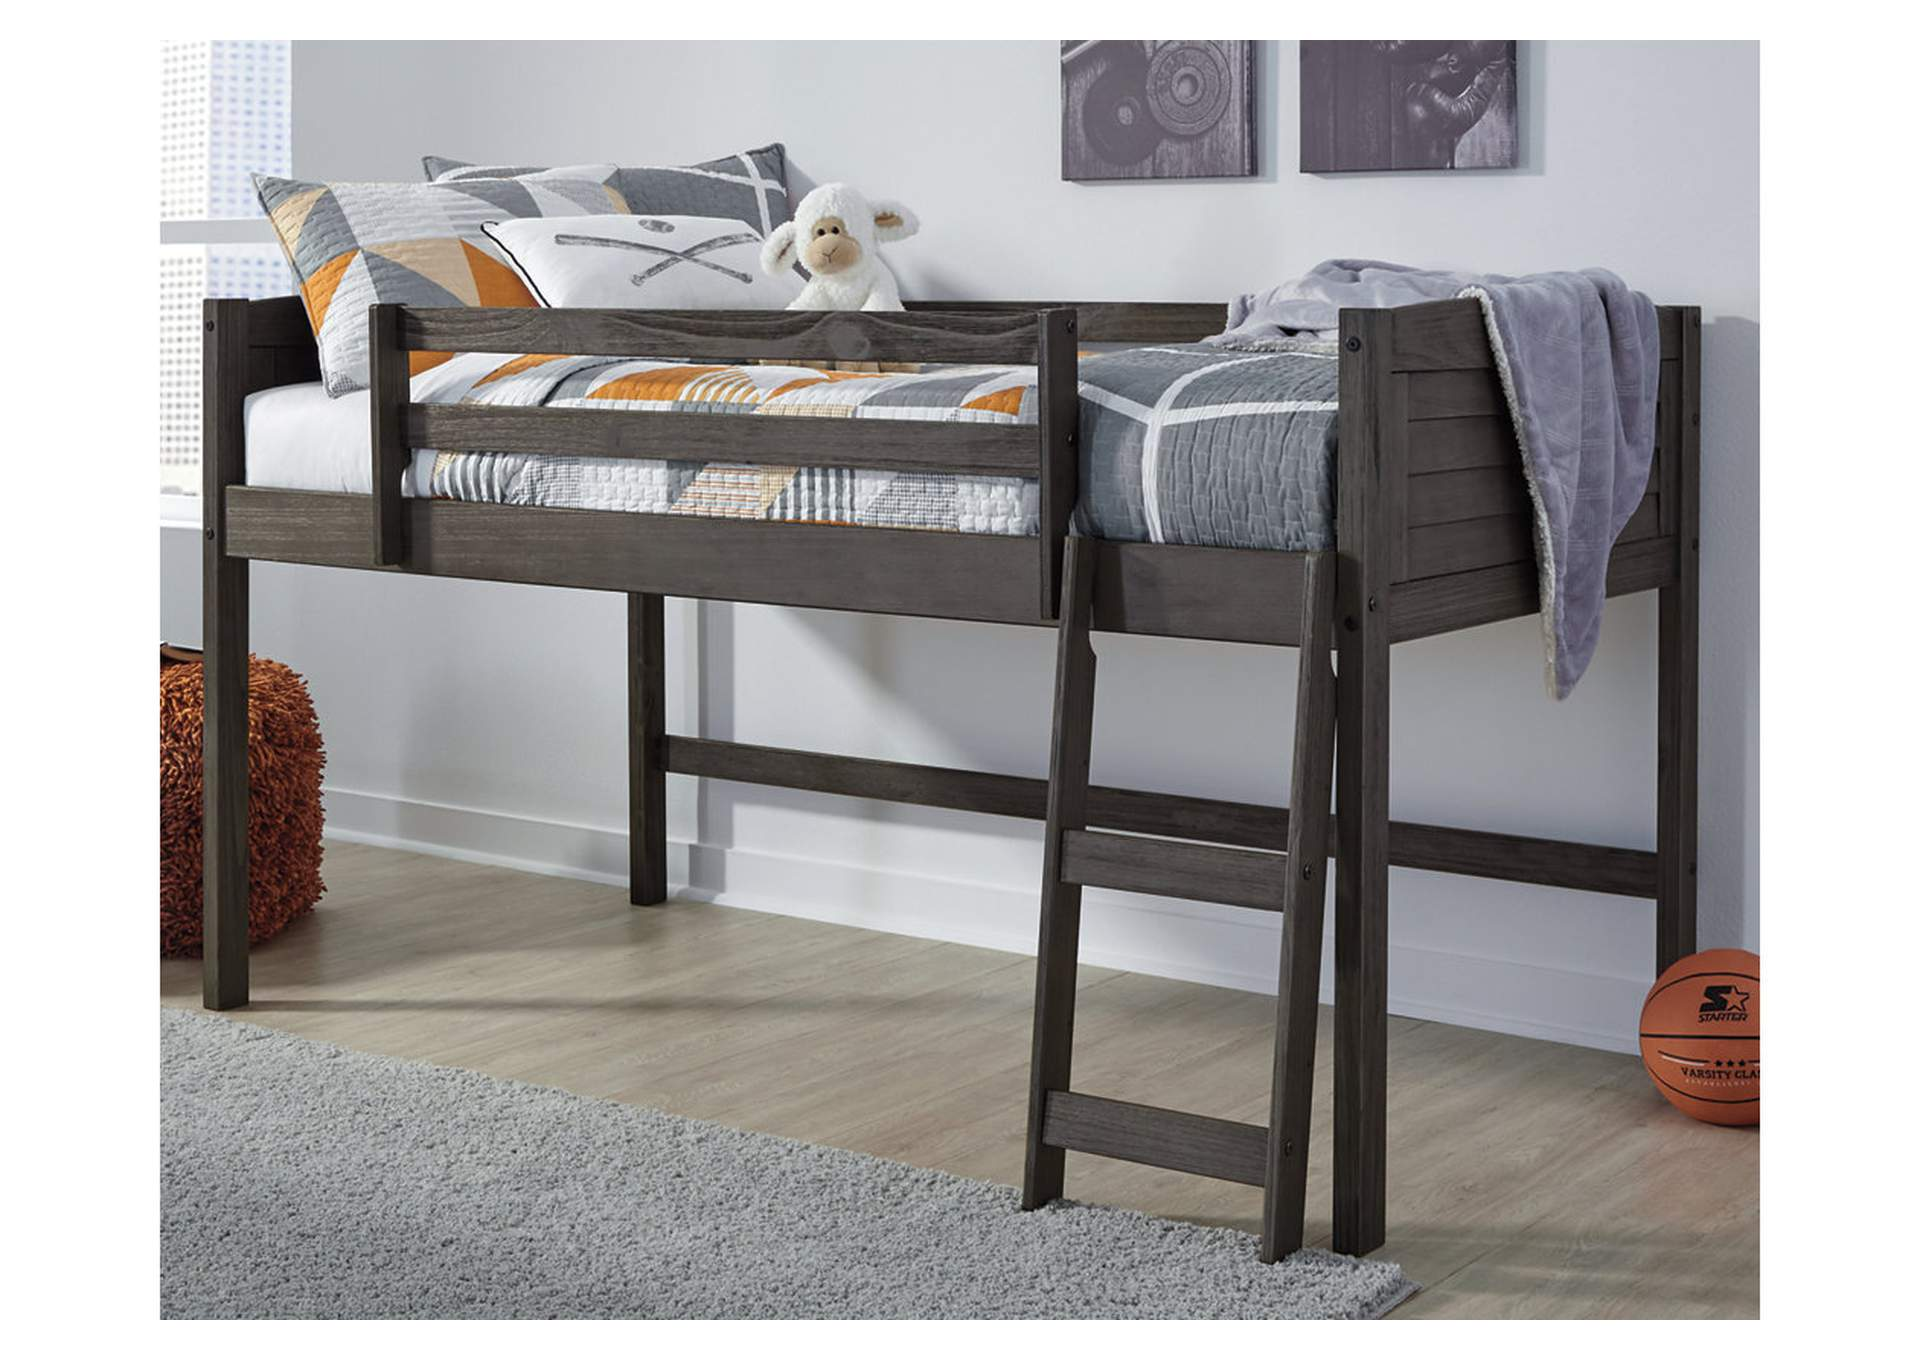 Caitbrook Gray Twin Loft Bed Frame,Signature Design By Ashley